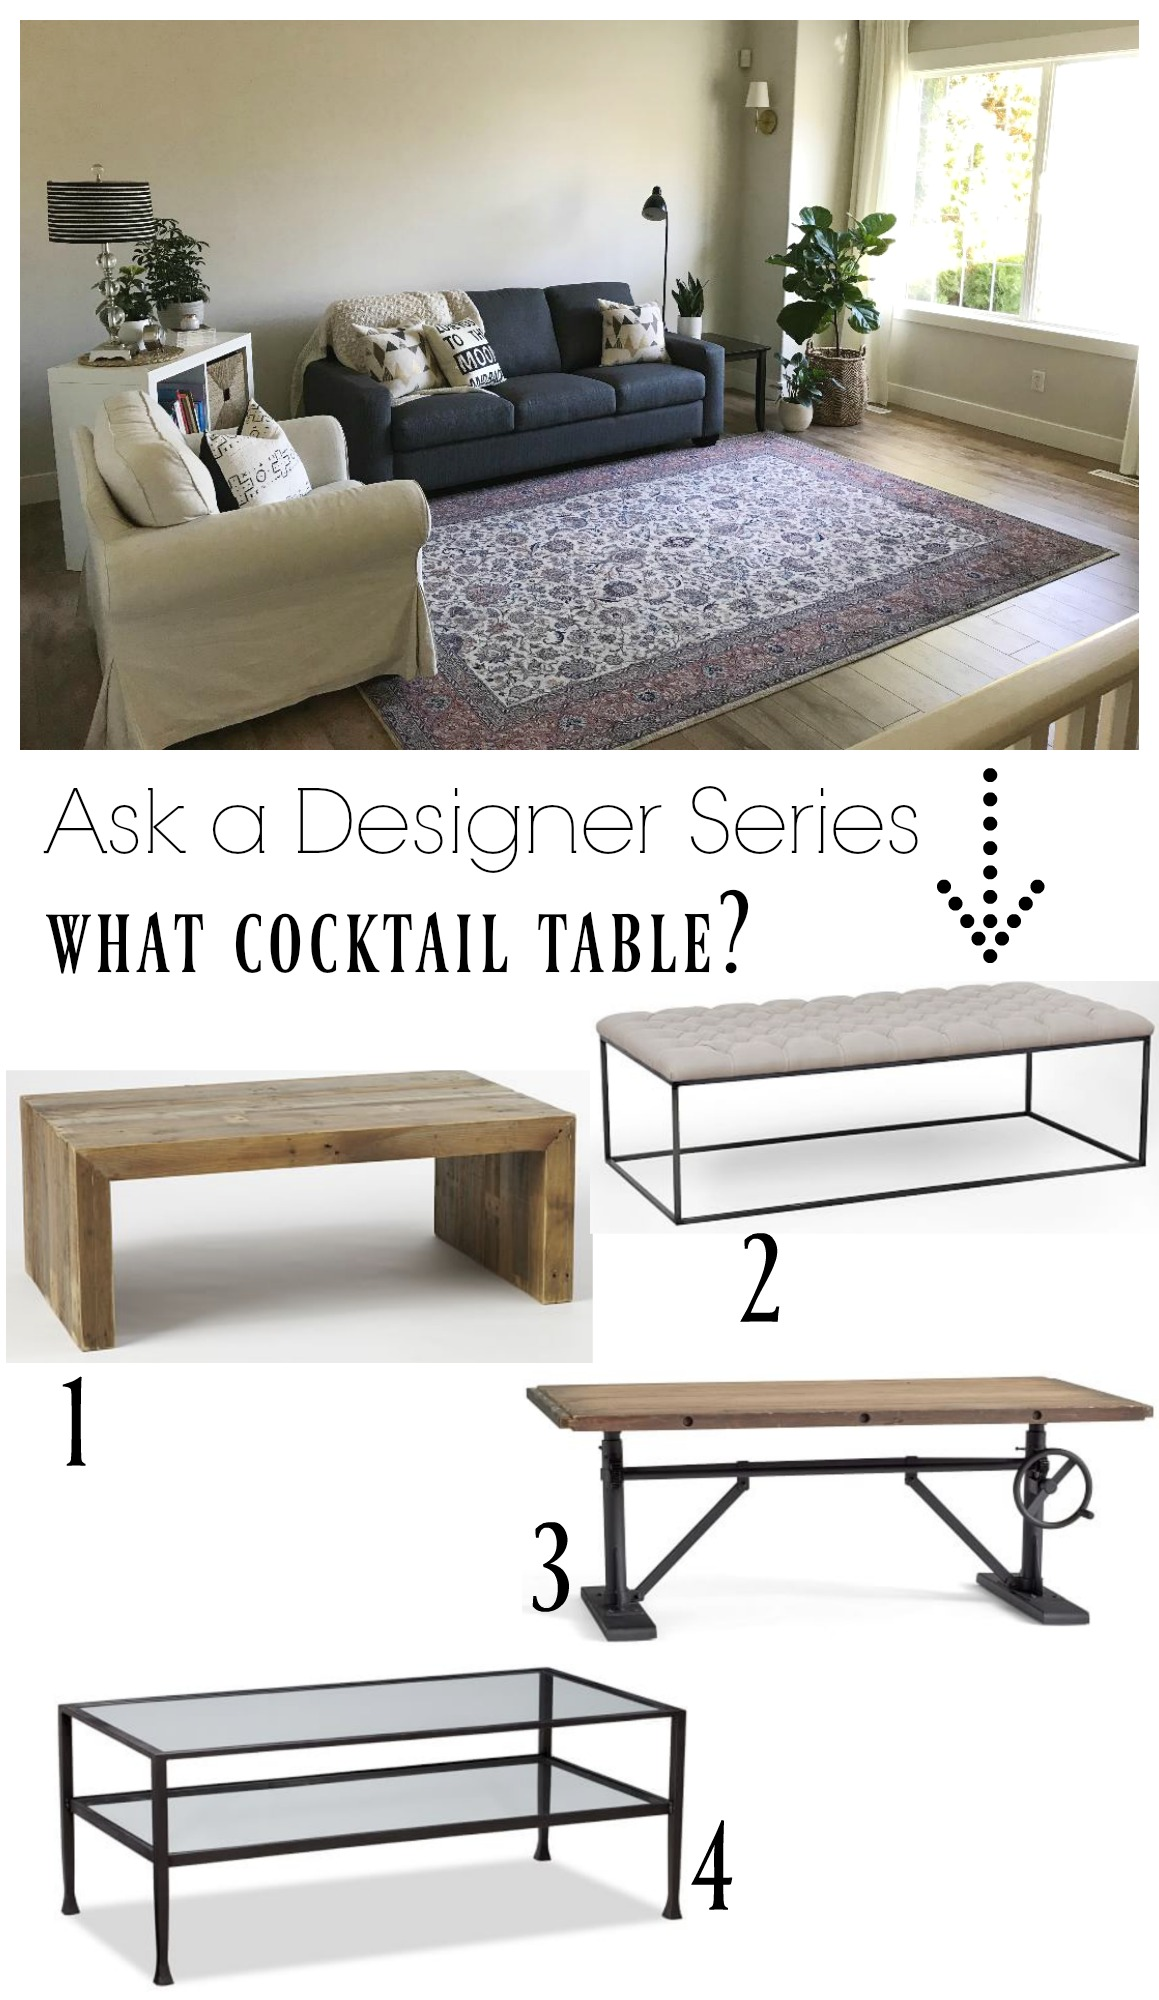 Ask a Designer Series- What Cocktail Table?